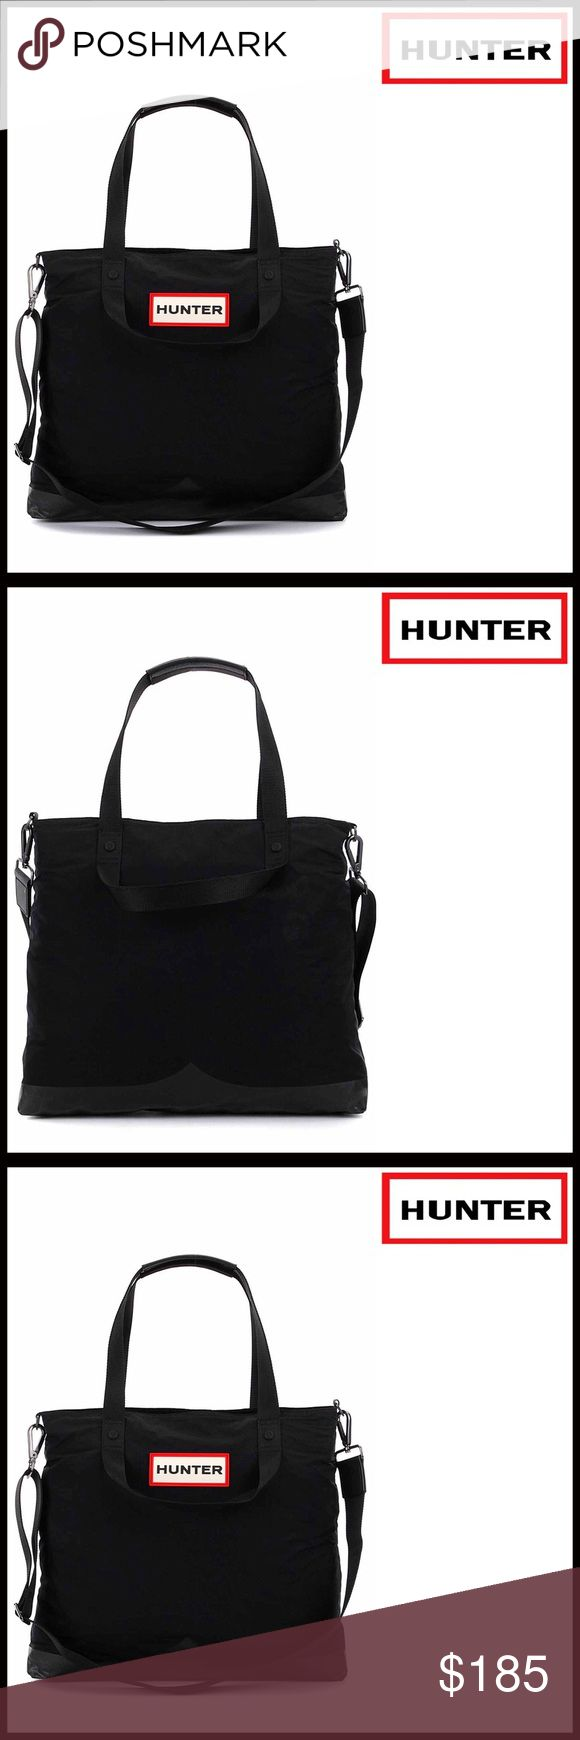 """HUNTER ORIGINAL LARGE TRAVEL COMMUTER BAG 💟NEW WITH TAGS💟 RETAIL PRICE:$200 AMAZING!  HUNTER ORIGINAL Travel Commuter Bag  * Detachable/adjustable shoulder strap   * Strap converts to crossbody/shoulder bag   * Dual top handles  * Zip top closure  * Nylon construction  * Approx 14.5"""" H X 16"""" W X 6"""" D;Approx 4"""" handle drop, 12-24"""" strap drop  * Dust bag included   Material: Nylon exterior, textile lining Color: Watermelon, black Item#HB918500 # Bucket saddle messenger tote 🚫No Trades🚫 ✅…"""